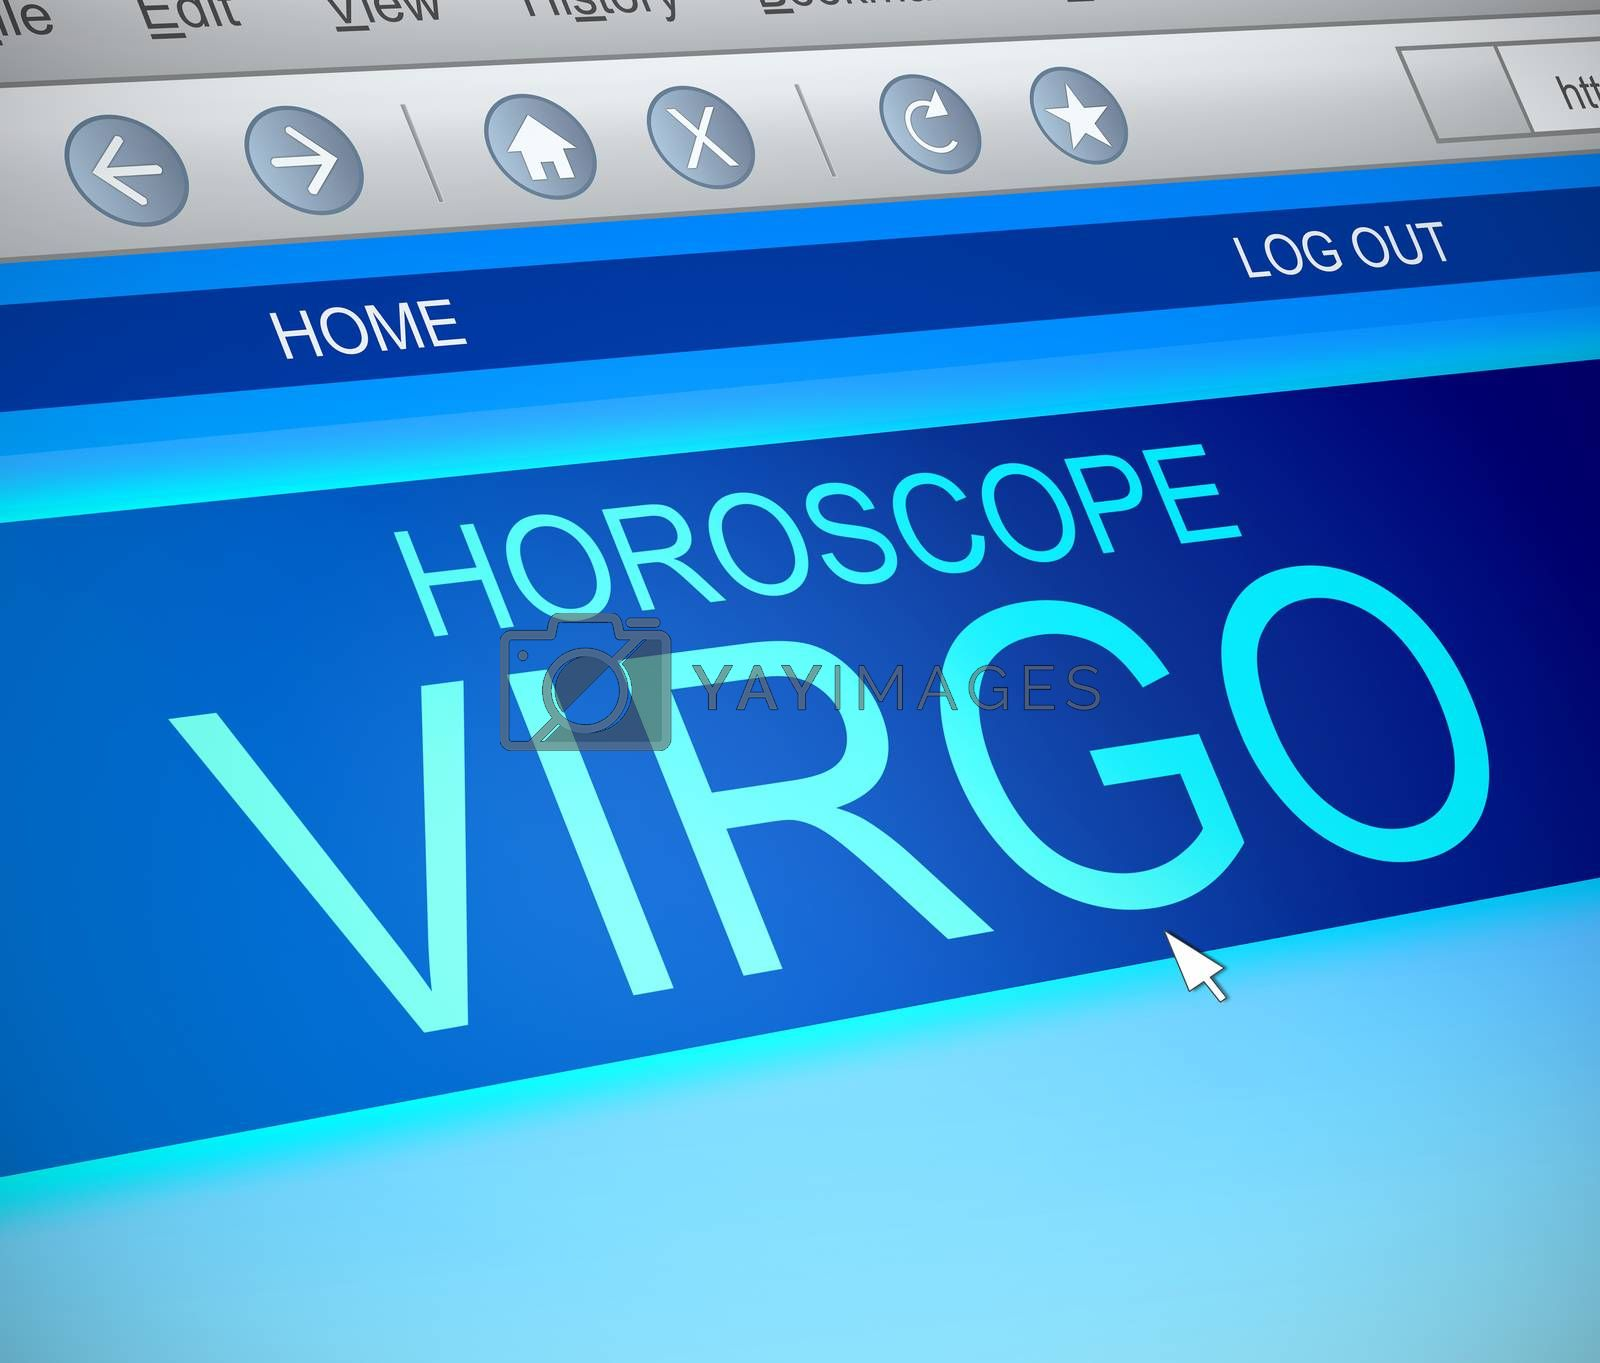 Illustration depicting a computer screen capture with a virgo concept.